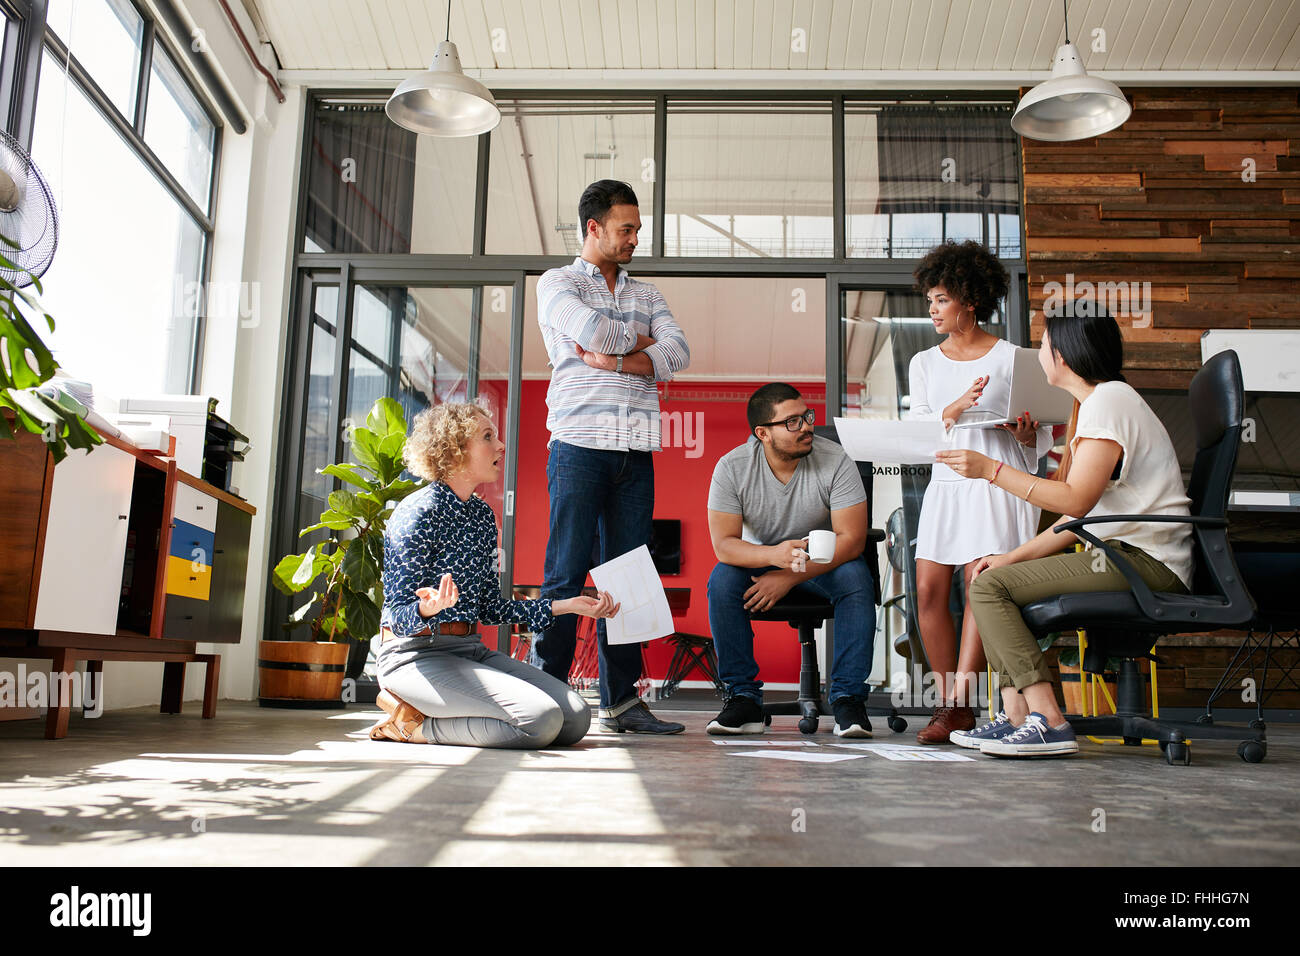 Creative team having a discussion on new design project in office. Project plan laid on floor with coworkers meeting - Stock Image